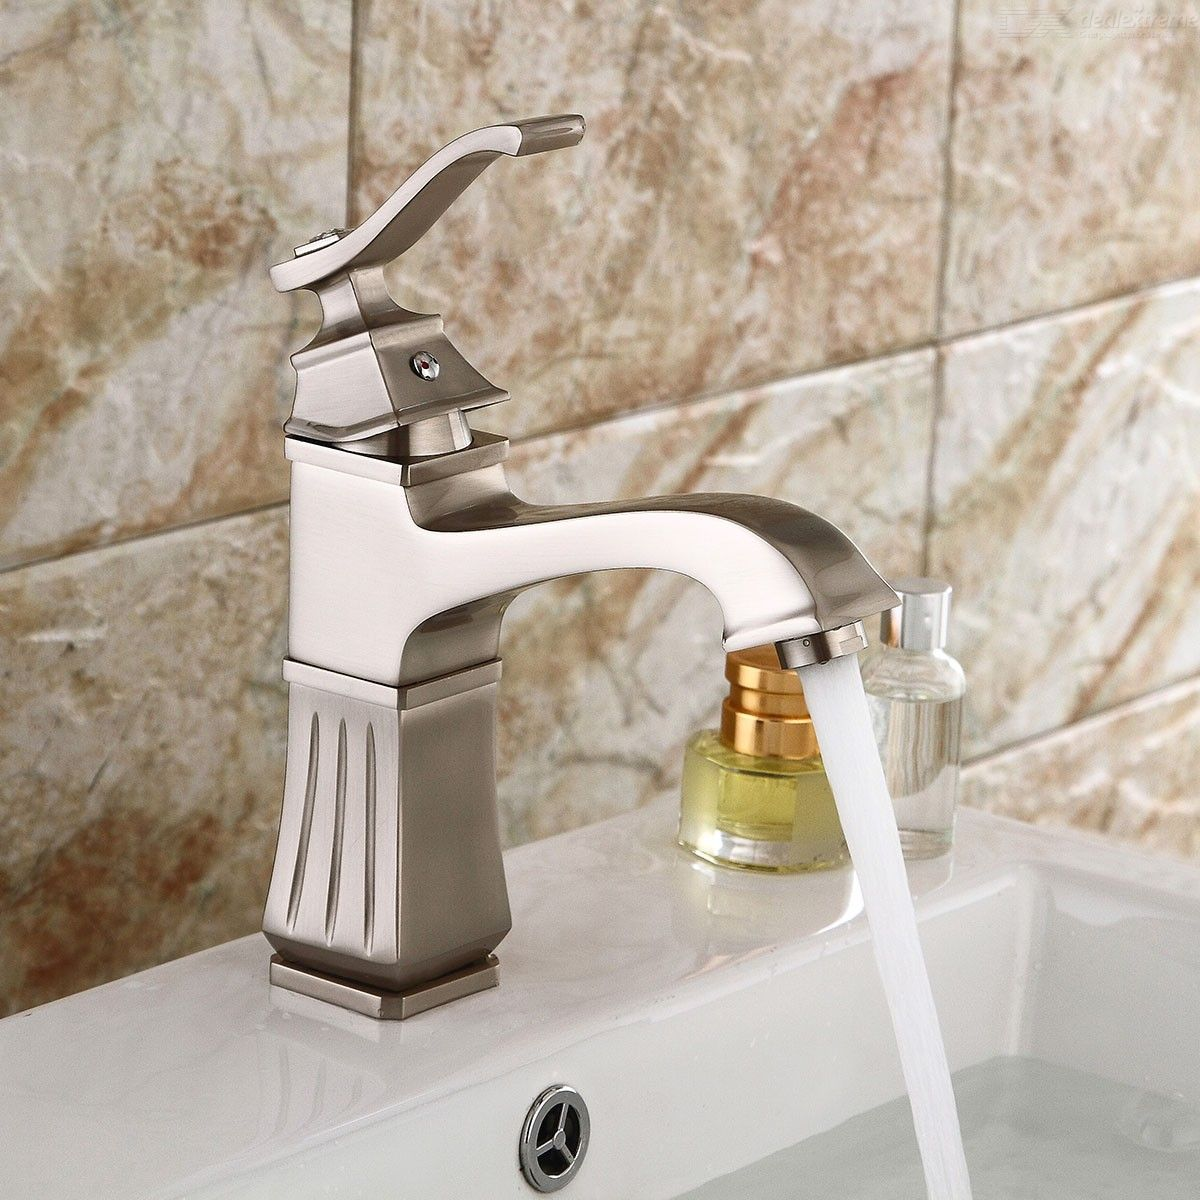 Contemporary Brass Waterfall Brushed Ceramic Valve One-Hole Bathroom Sink Faucet with Single Handle